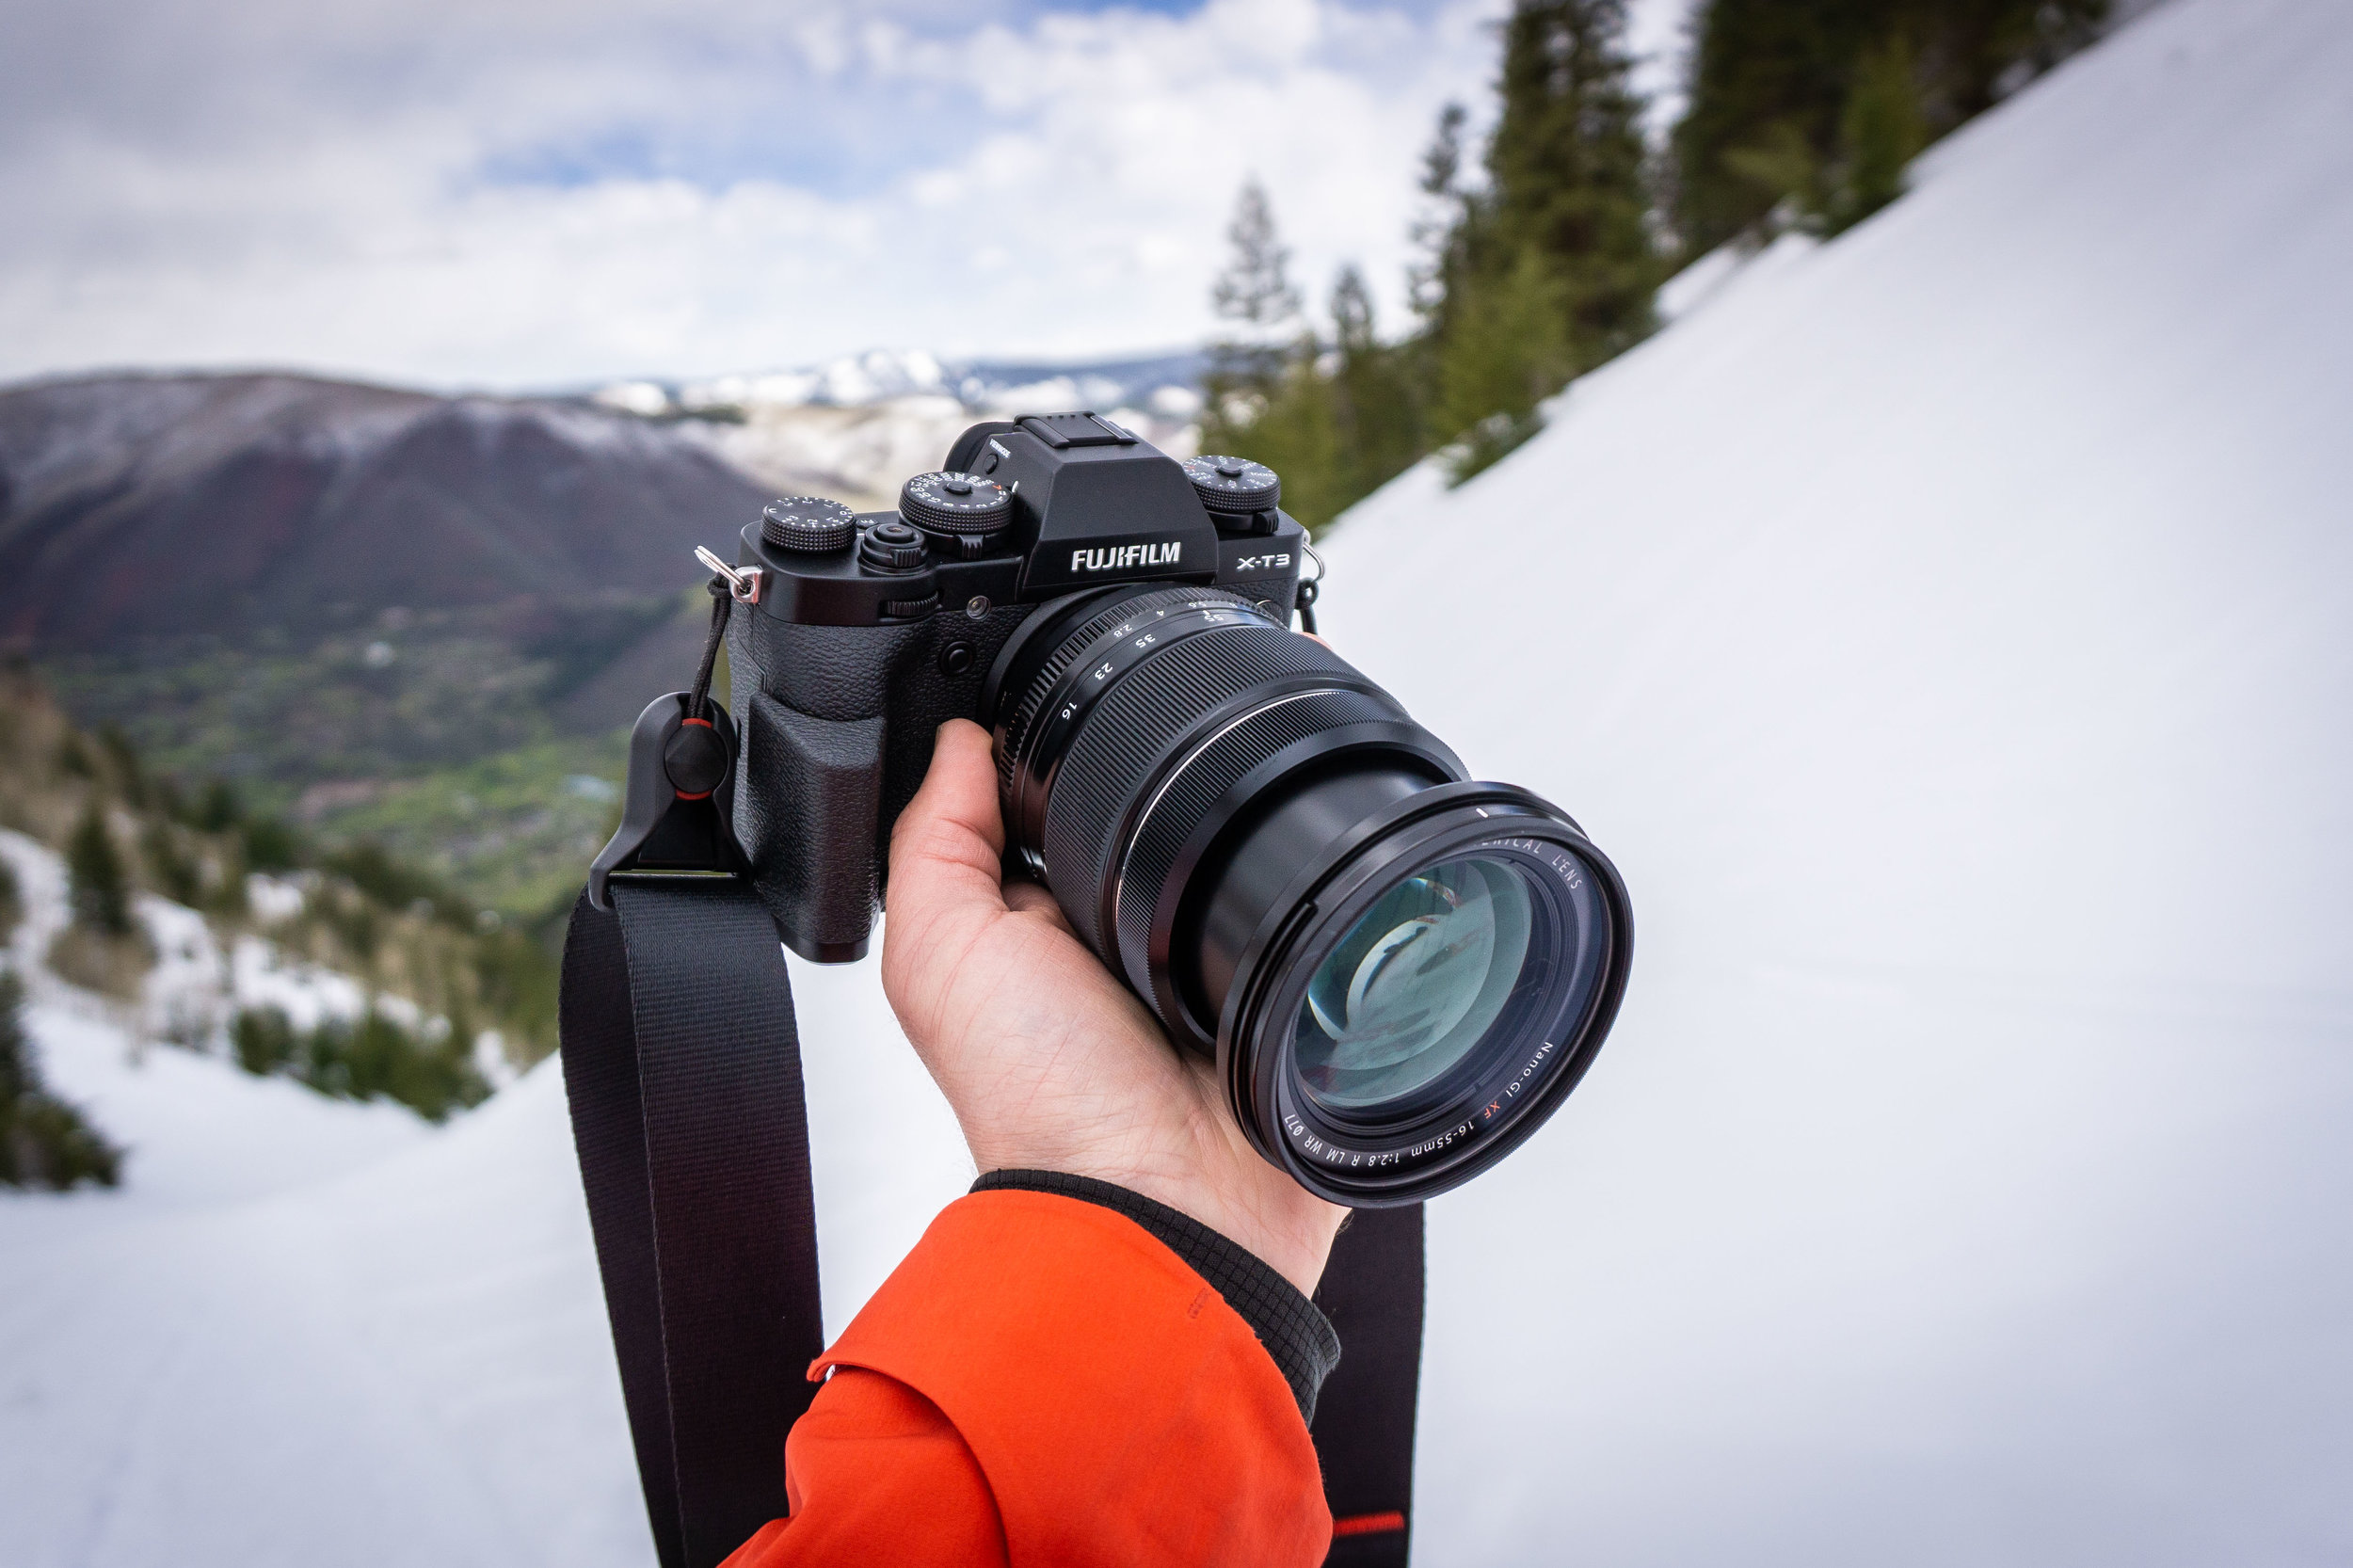 Taking my new Fuji XT3 on a test run shooting photos on Aspen Mountain. Pictured with an added grip (I found this pretty useful for ergonomics) and the  XF 16-55mm f/2.8 R  lens, which actually isn't all that better than the kit lens. Just heavier and more expensive, with constant aperture.